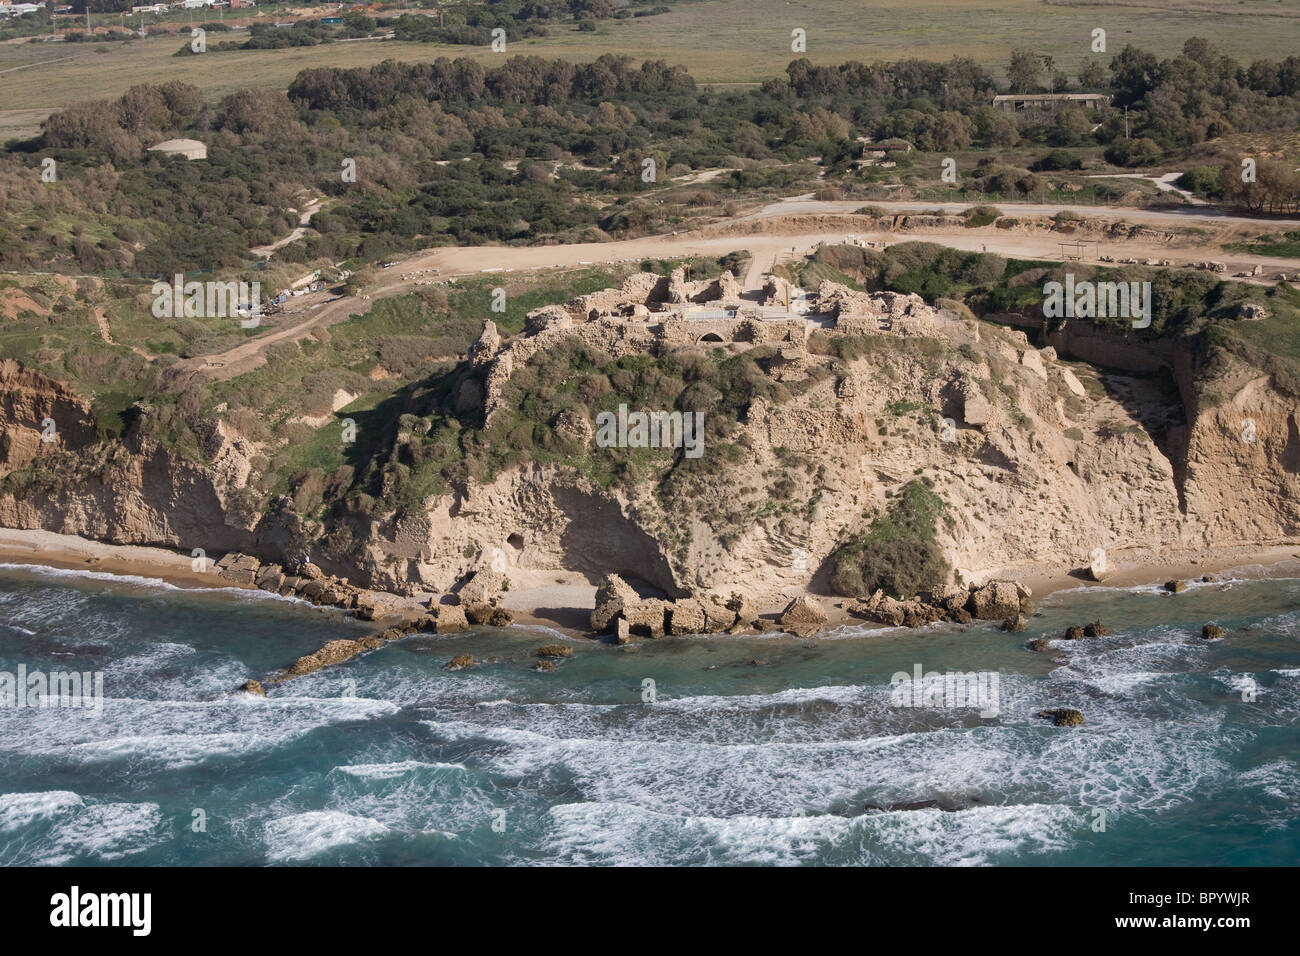 Aerial photograph of the ruins of the Apollonia fortress in the modern city of Herzliya - Stock Image